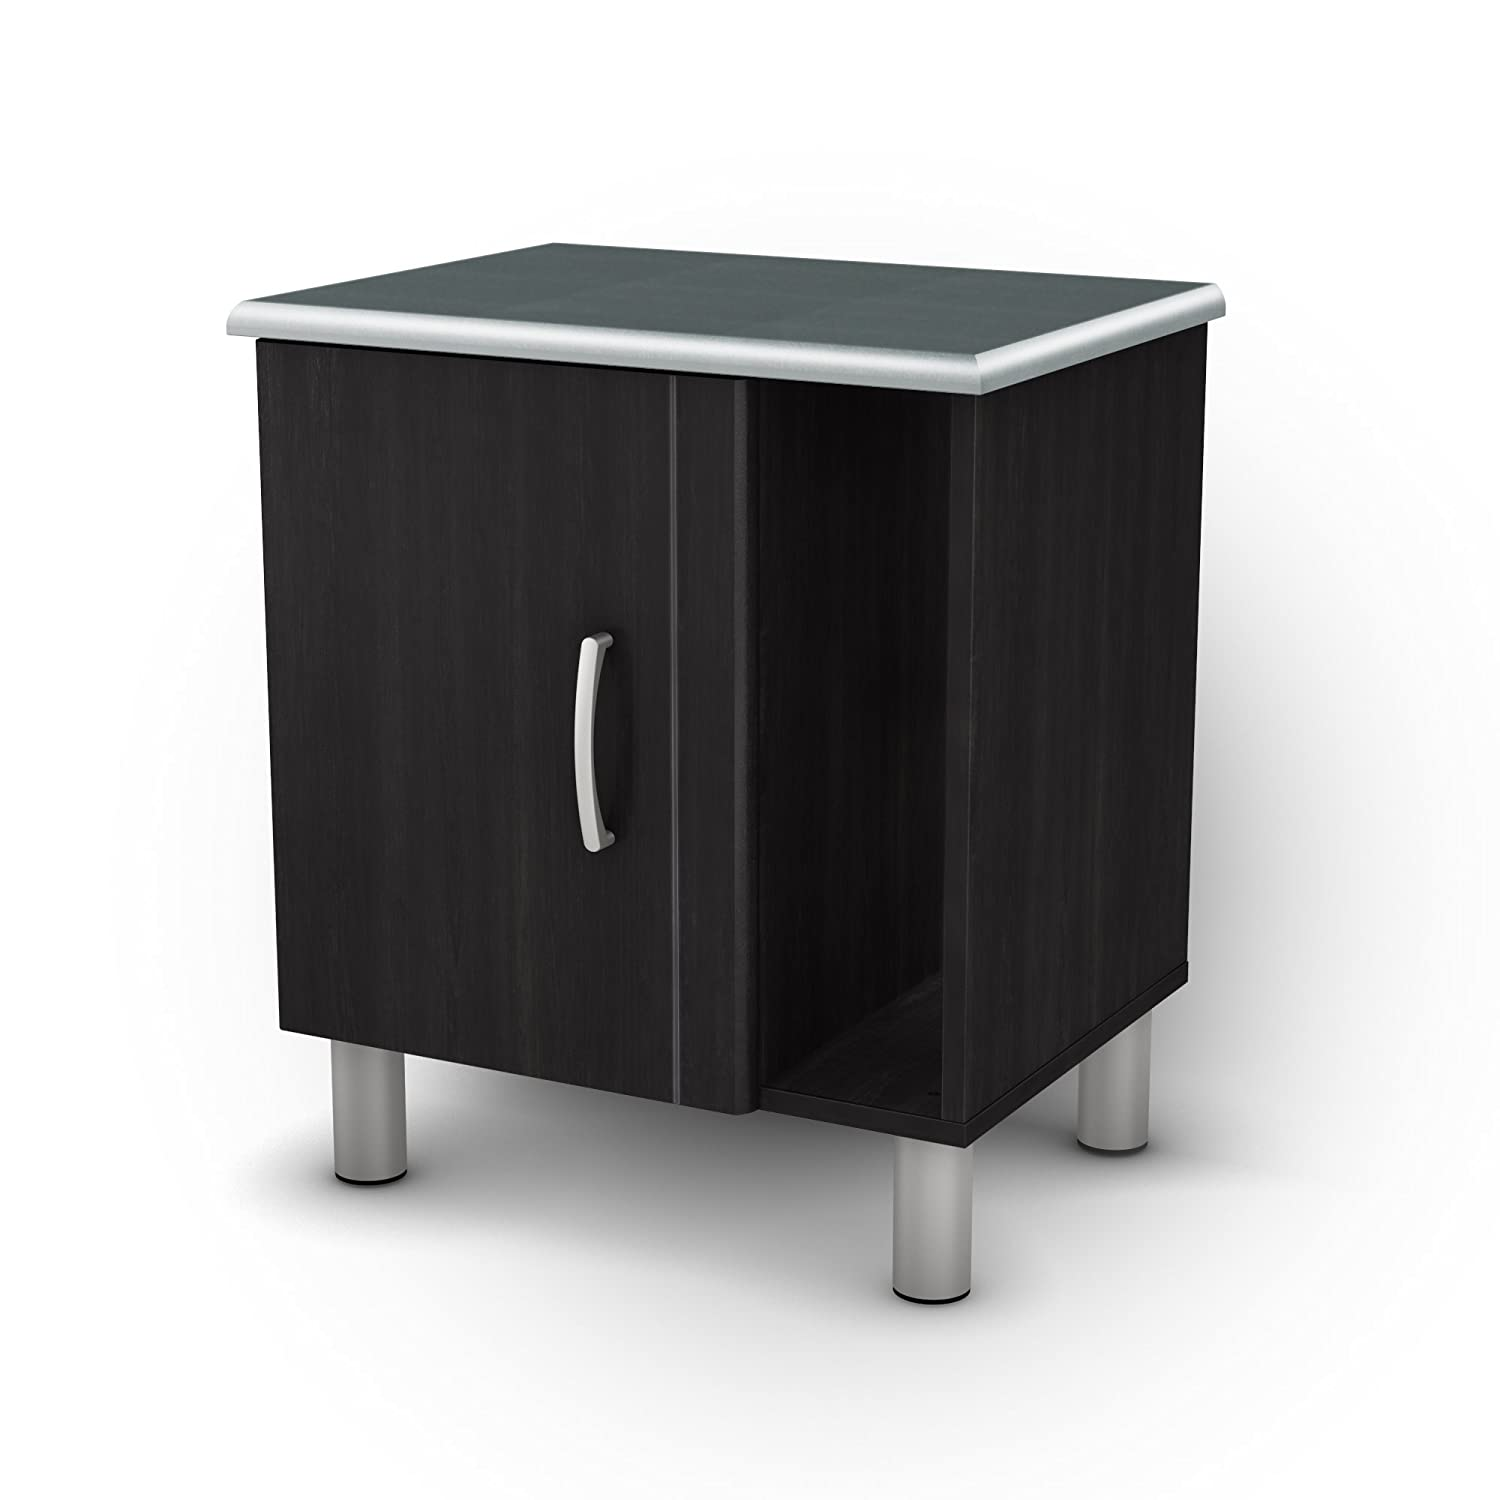 amazoncom south shore night stand cosmos collection black onyx  - amazoncom south shore night stand cosmos collection black onyx andcharcoal kitchen  dining